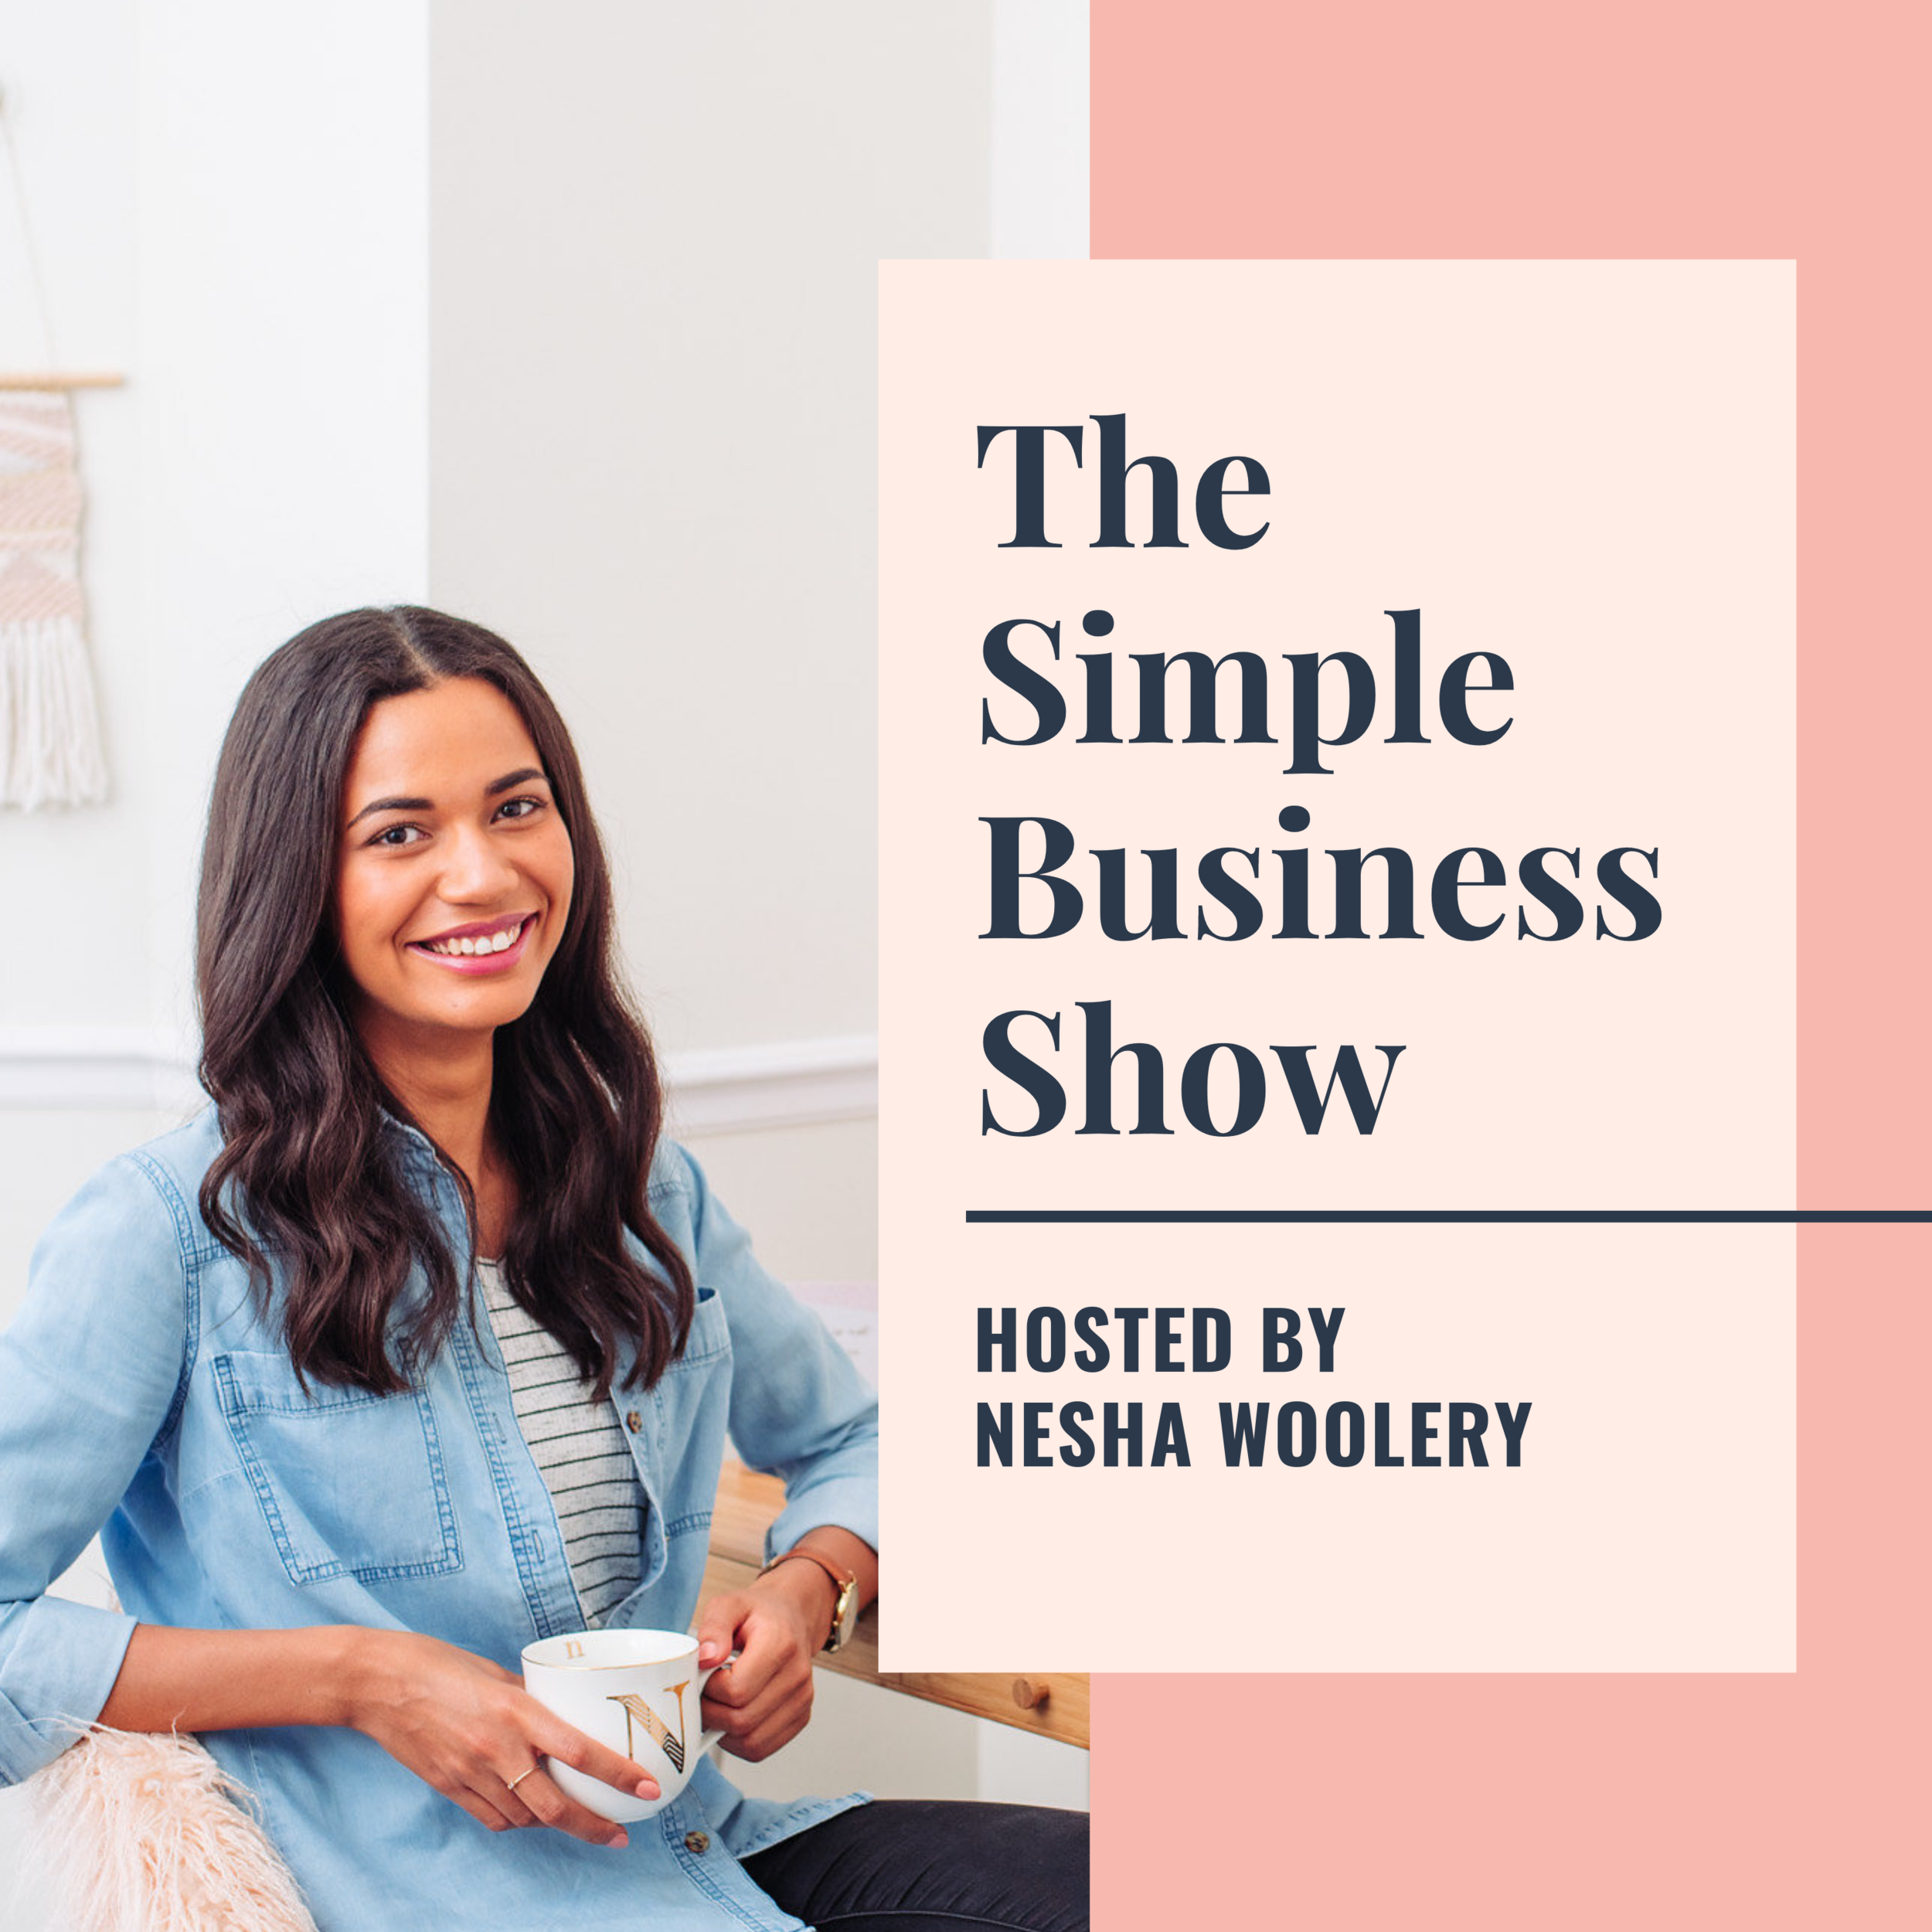 The Simple Business ShowHosted by Nesha Woolery - Nesha is all about simplifying your business! She wants you to work smarter and not harder, so she's got lots of advice about creating systems in your business to make your life 100x less stressful.